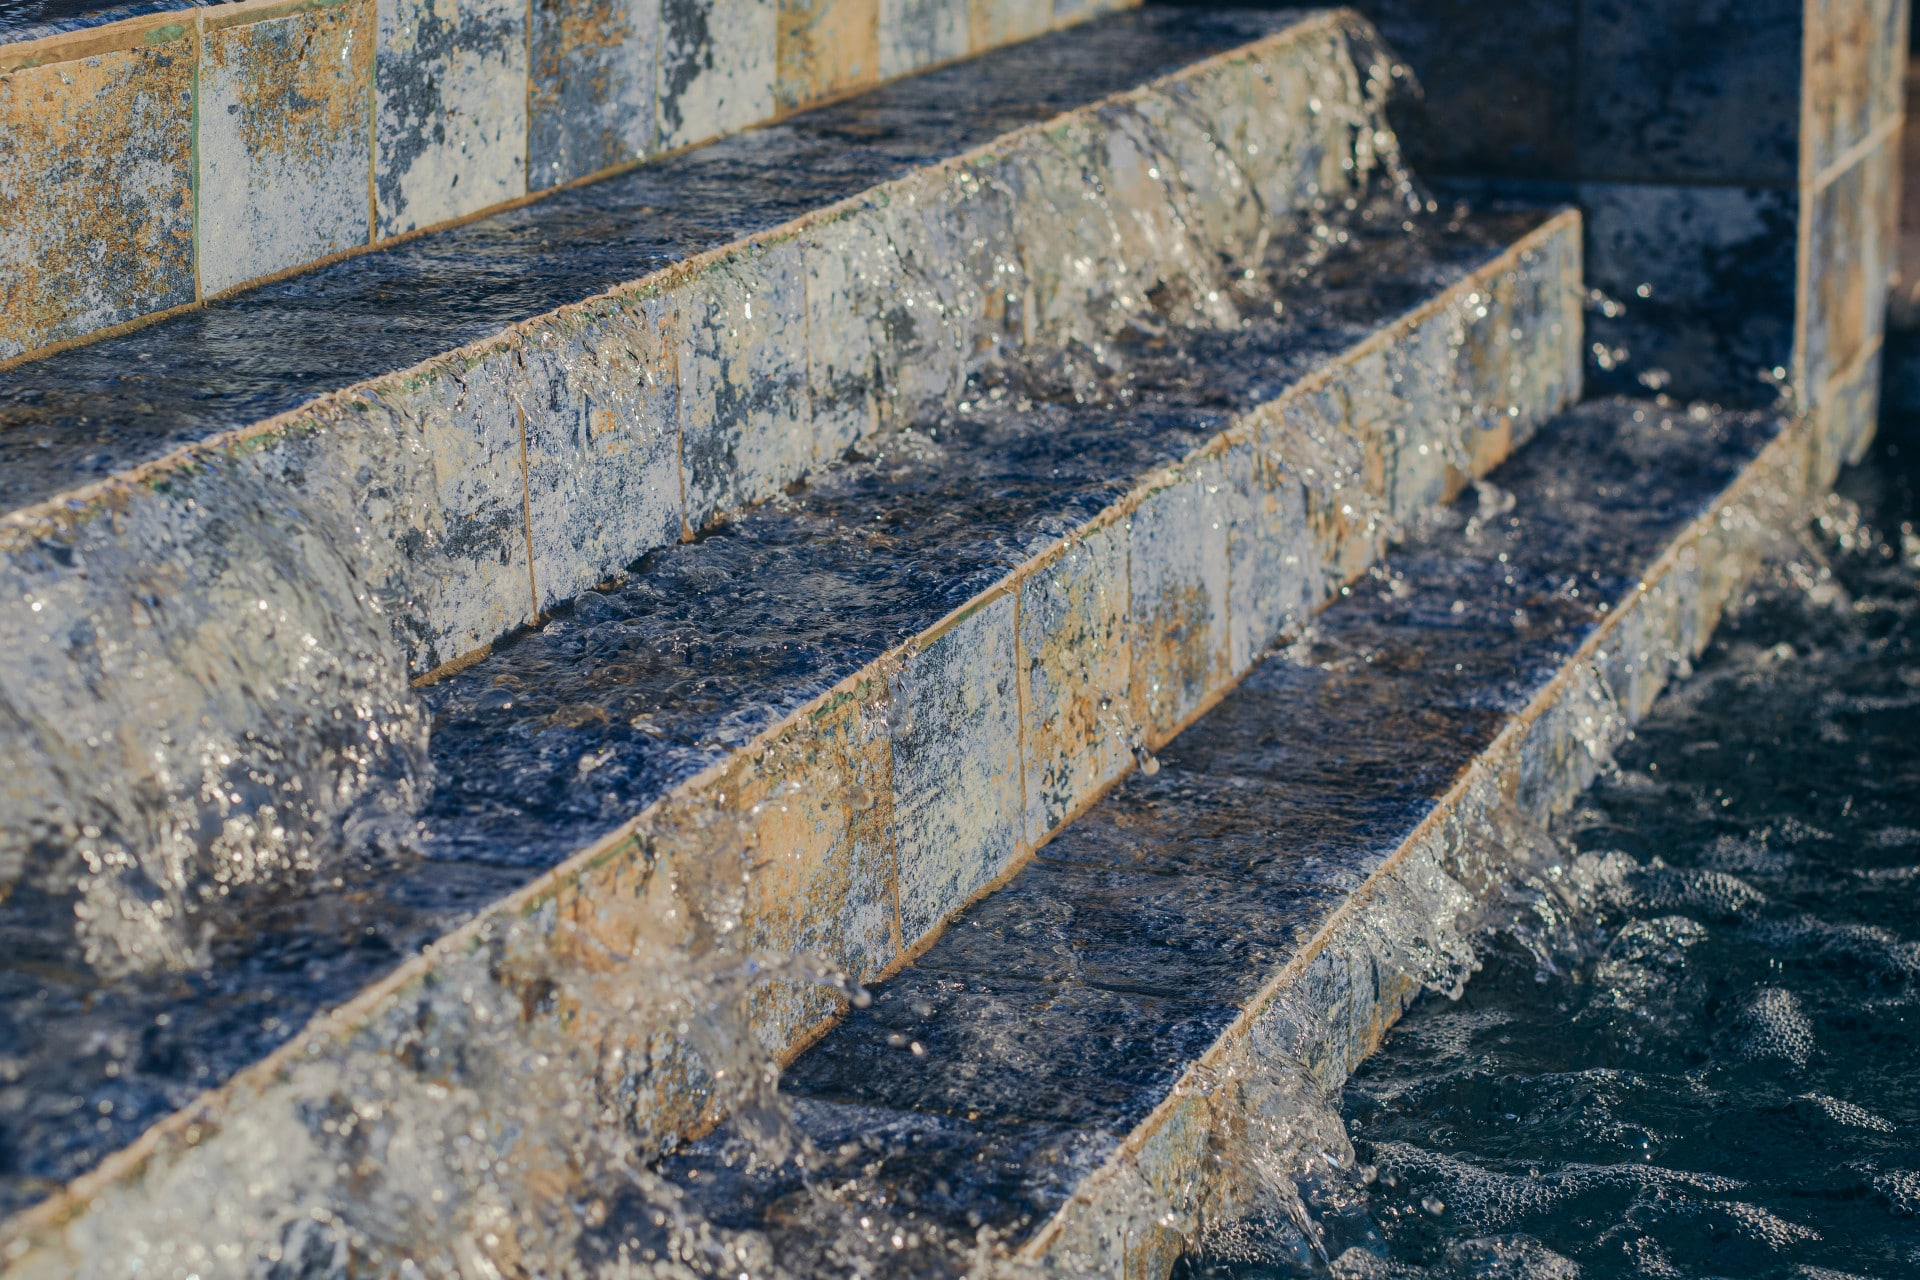 Closeup of steps leading down into a pool with water running down the steps.